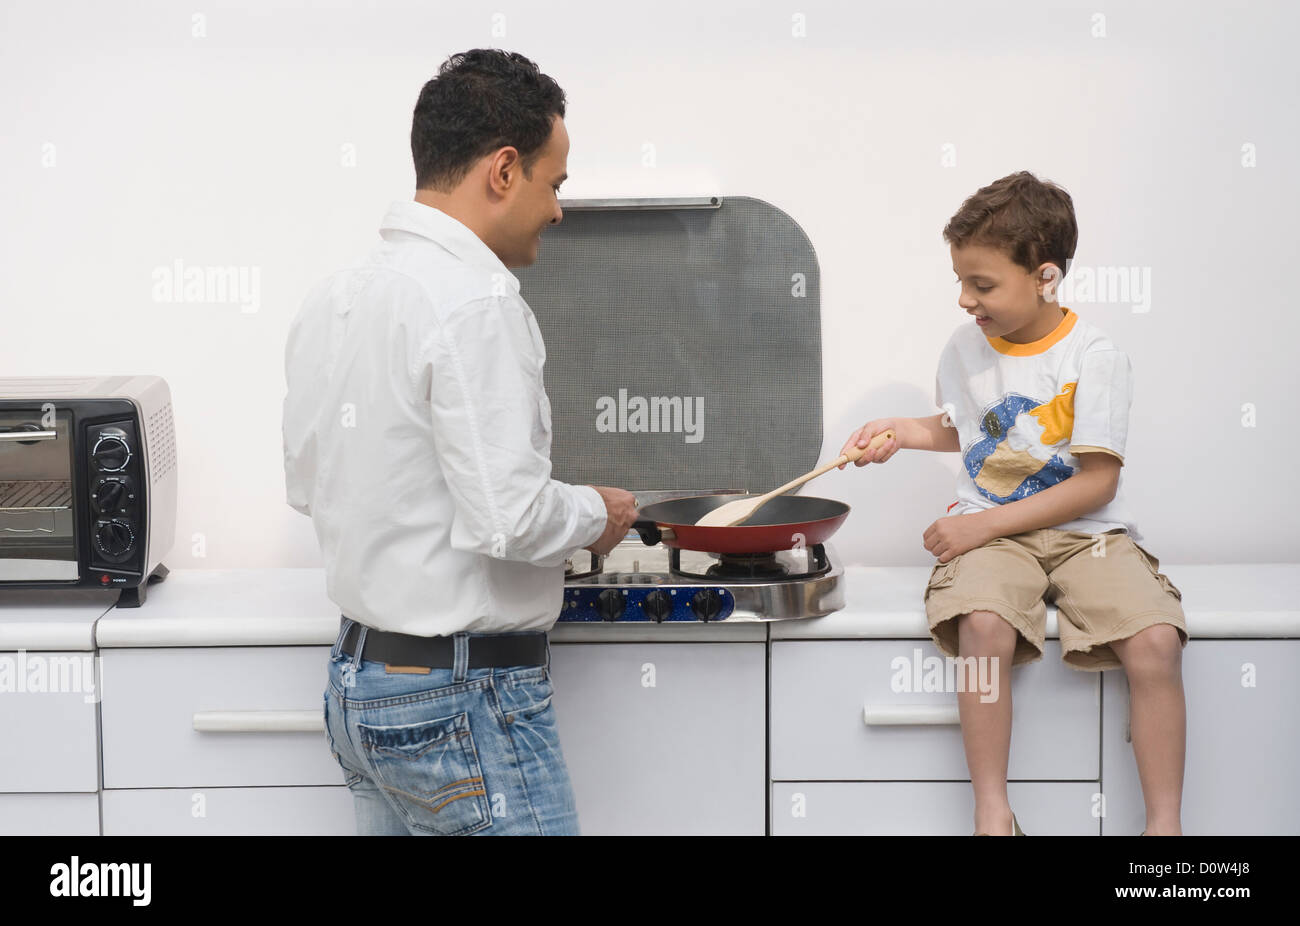 Man and his son preparing food in a kitchen - Stock Image